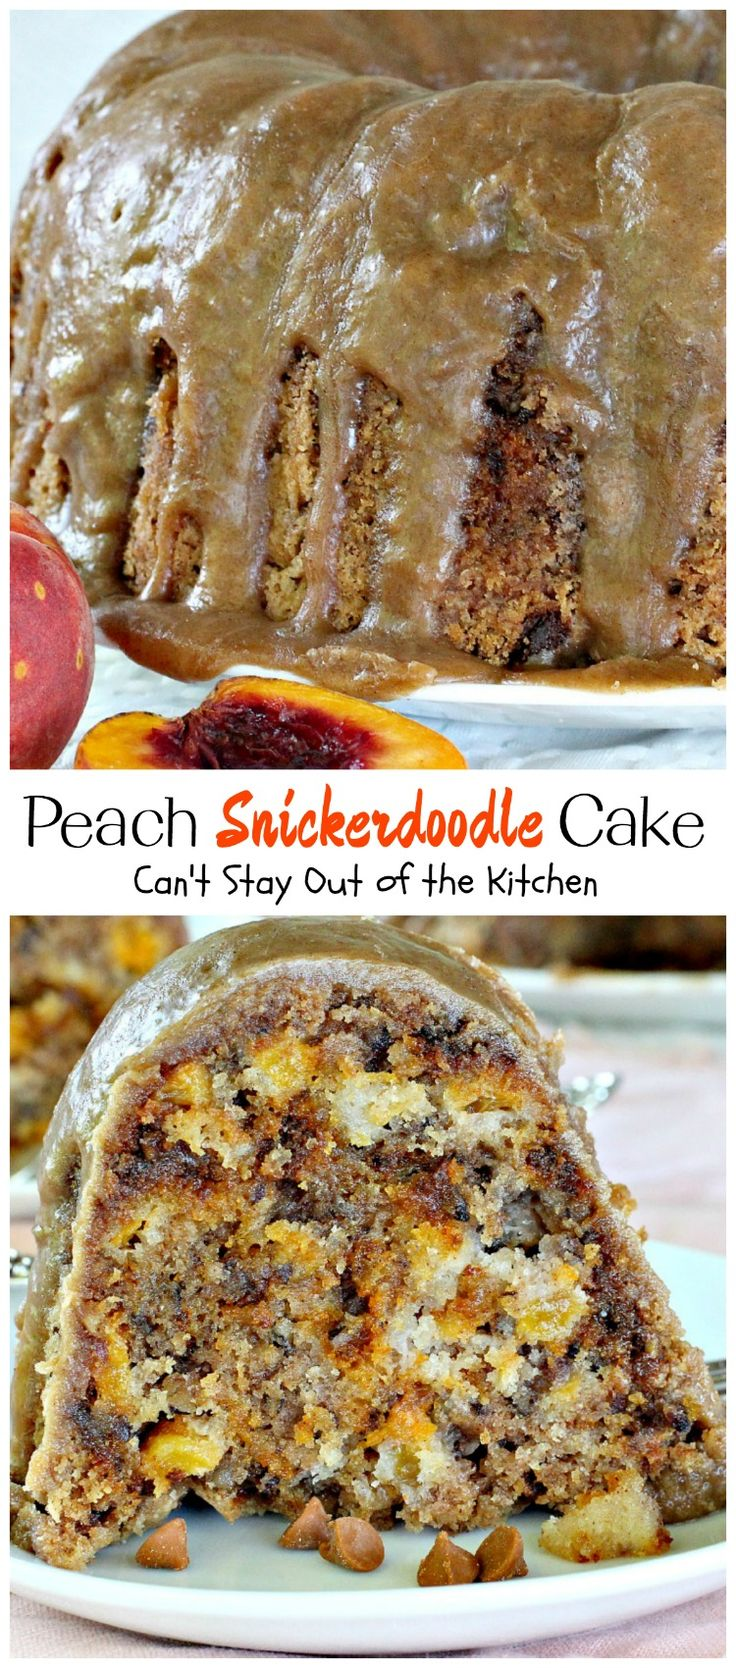 Peach Snickerdoodle Cake | Can't Stay Out of the Kitchen